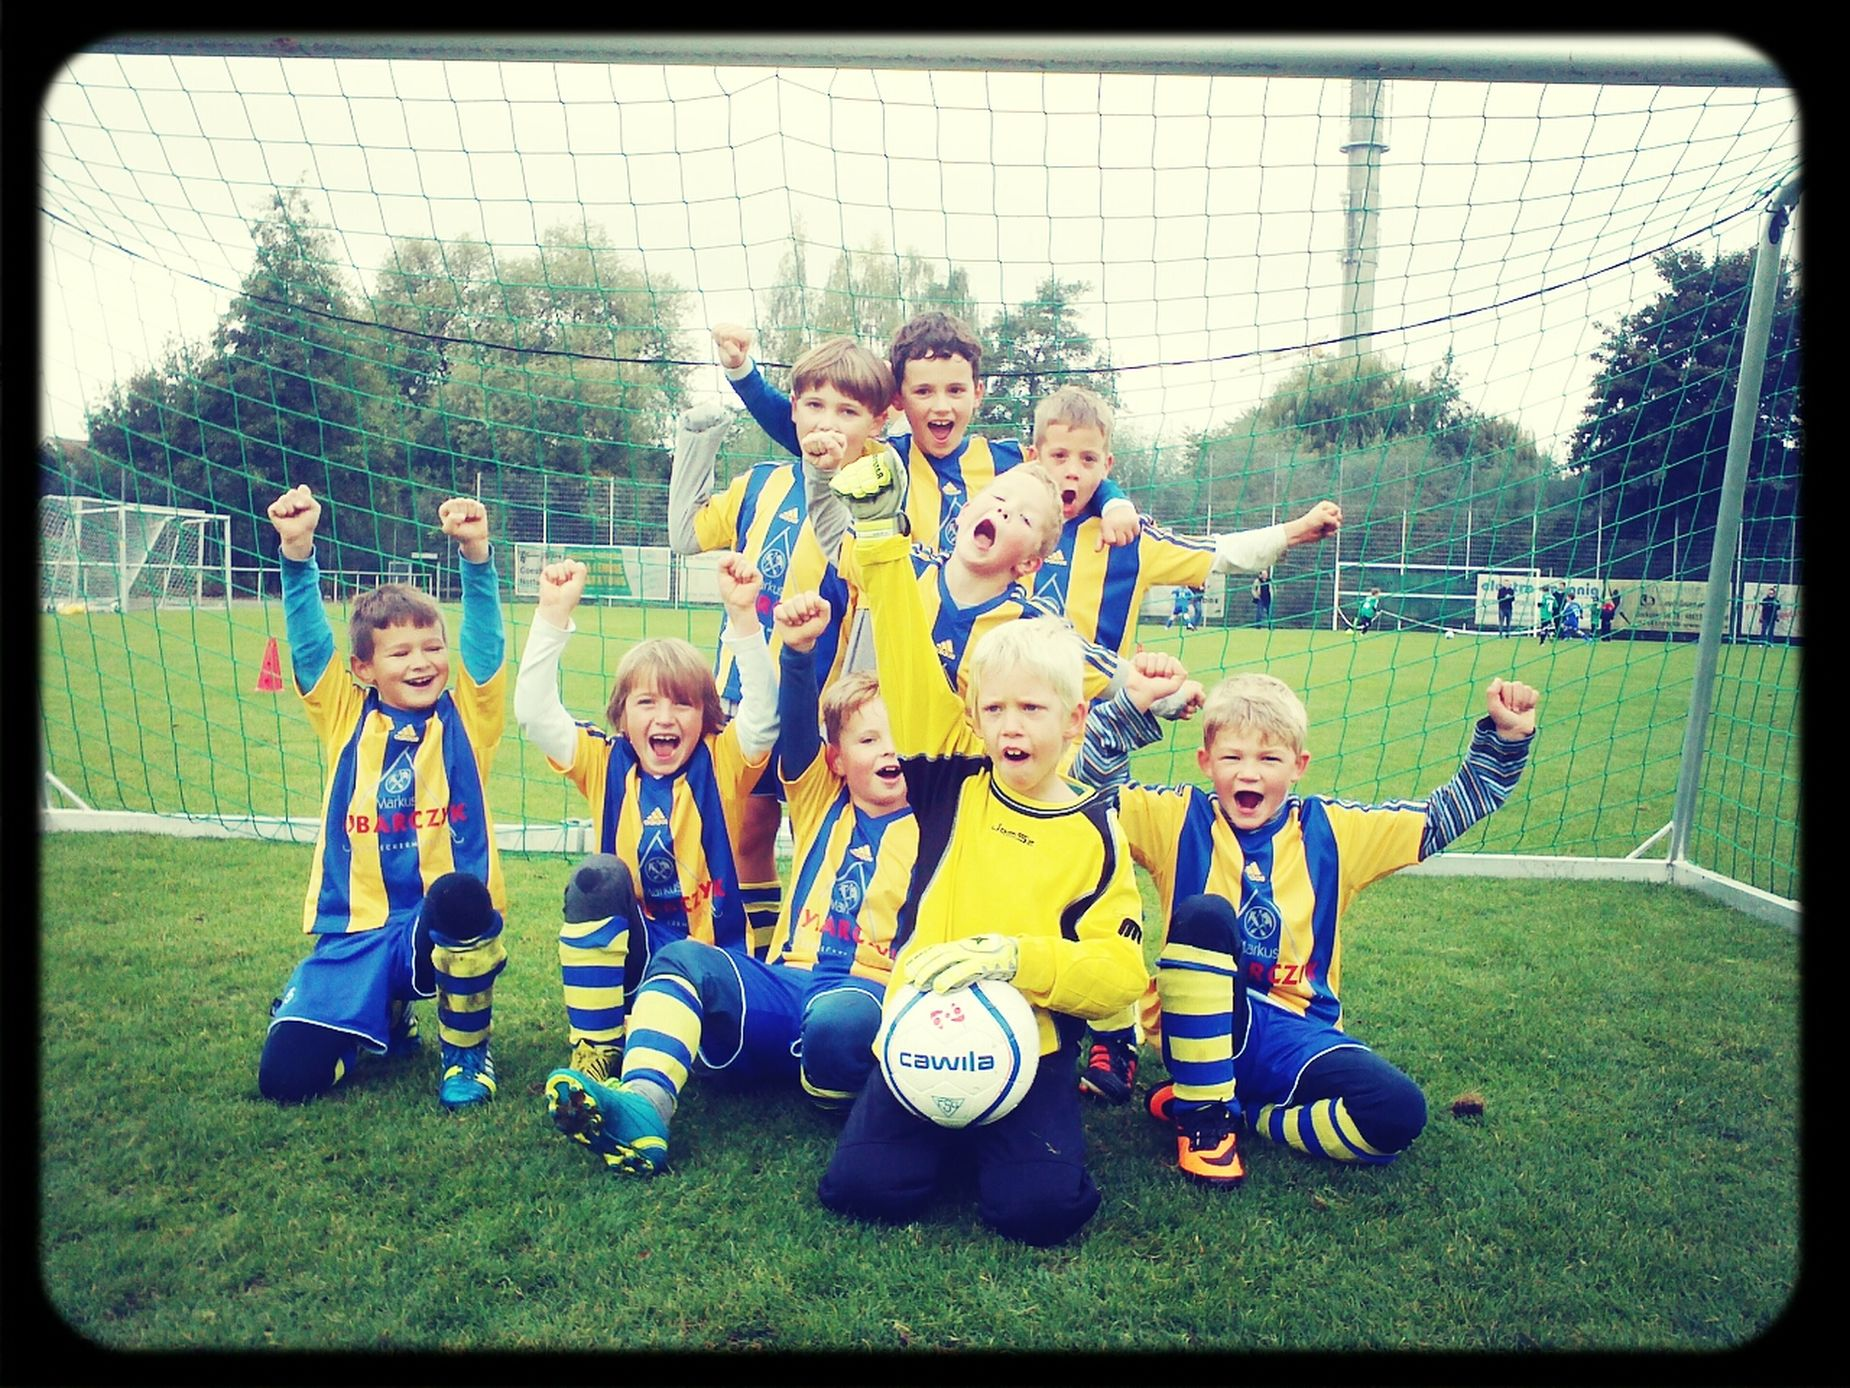 8:2 victory Youthsoccer Jugendfussball